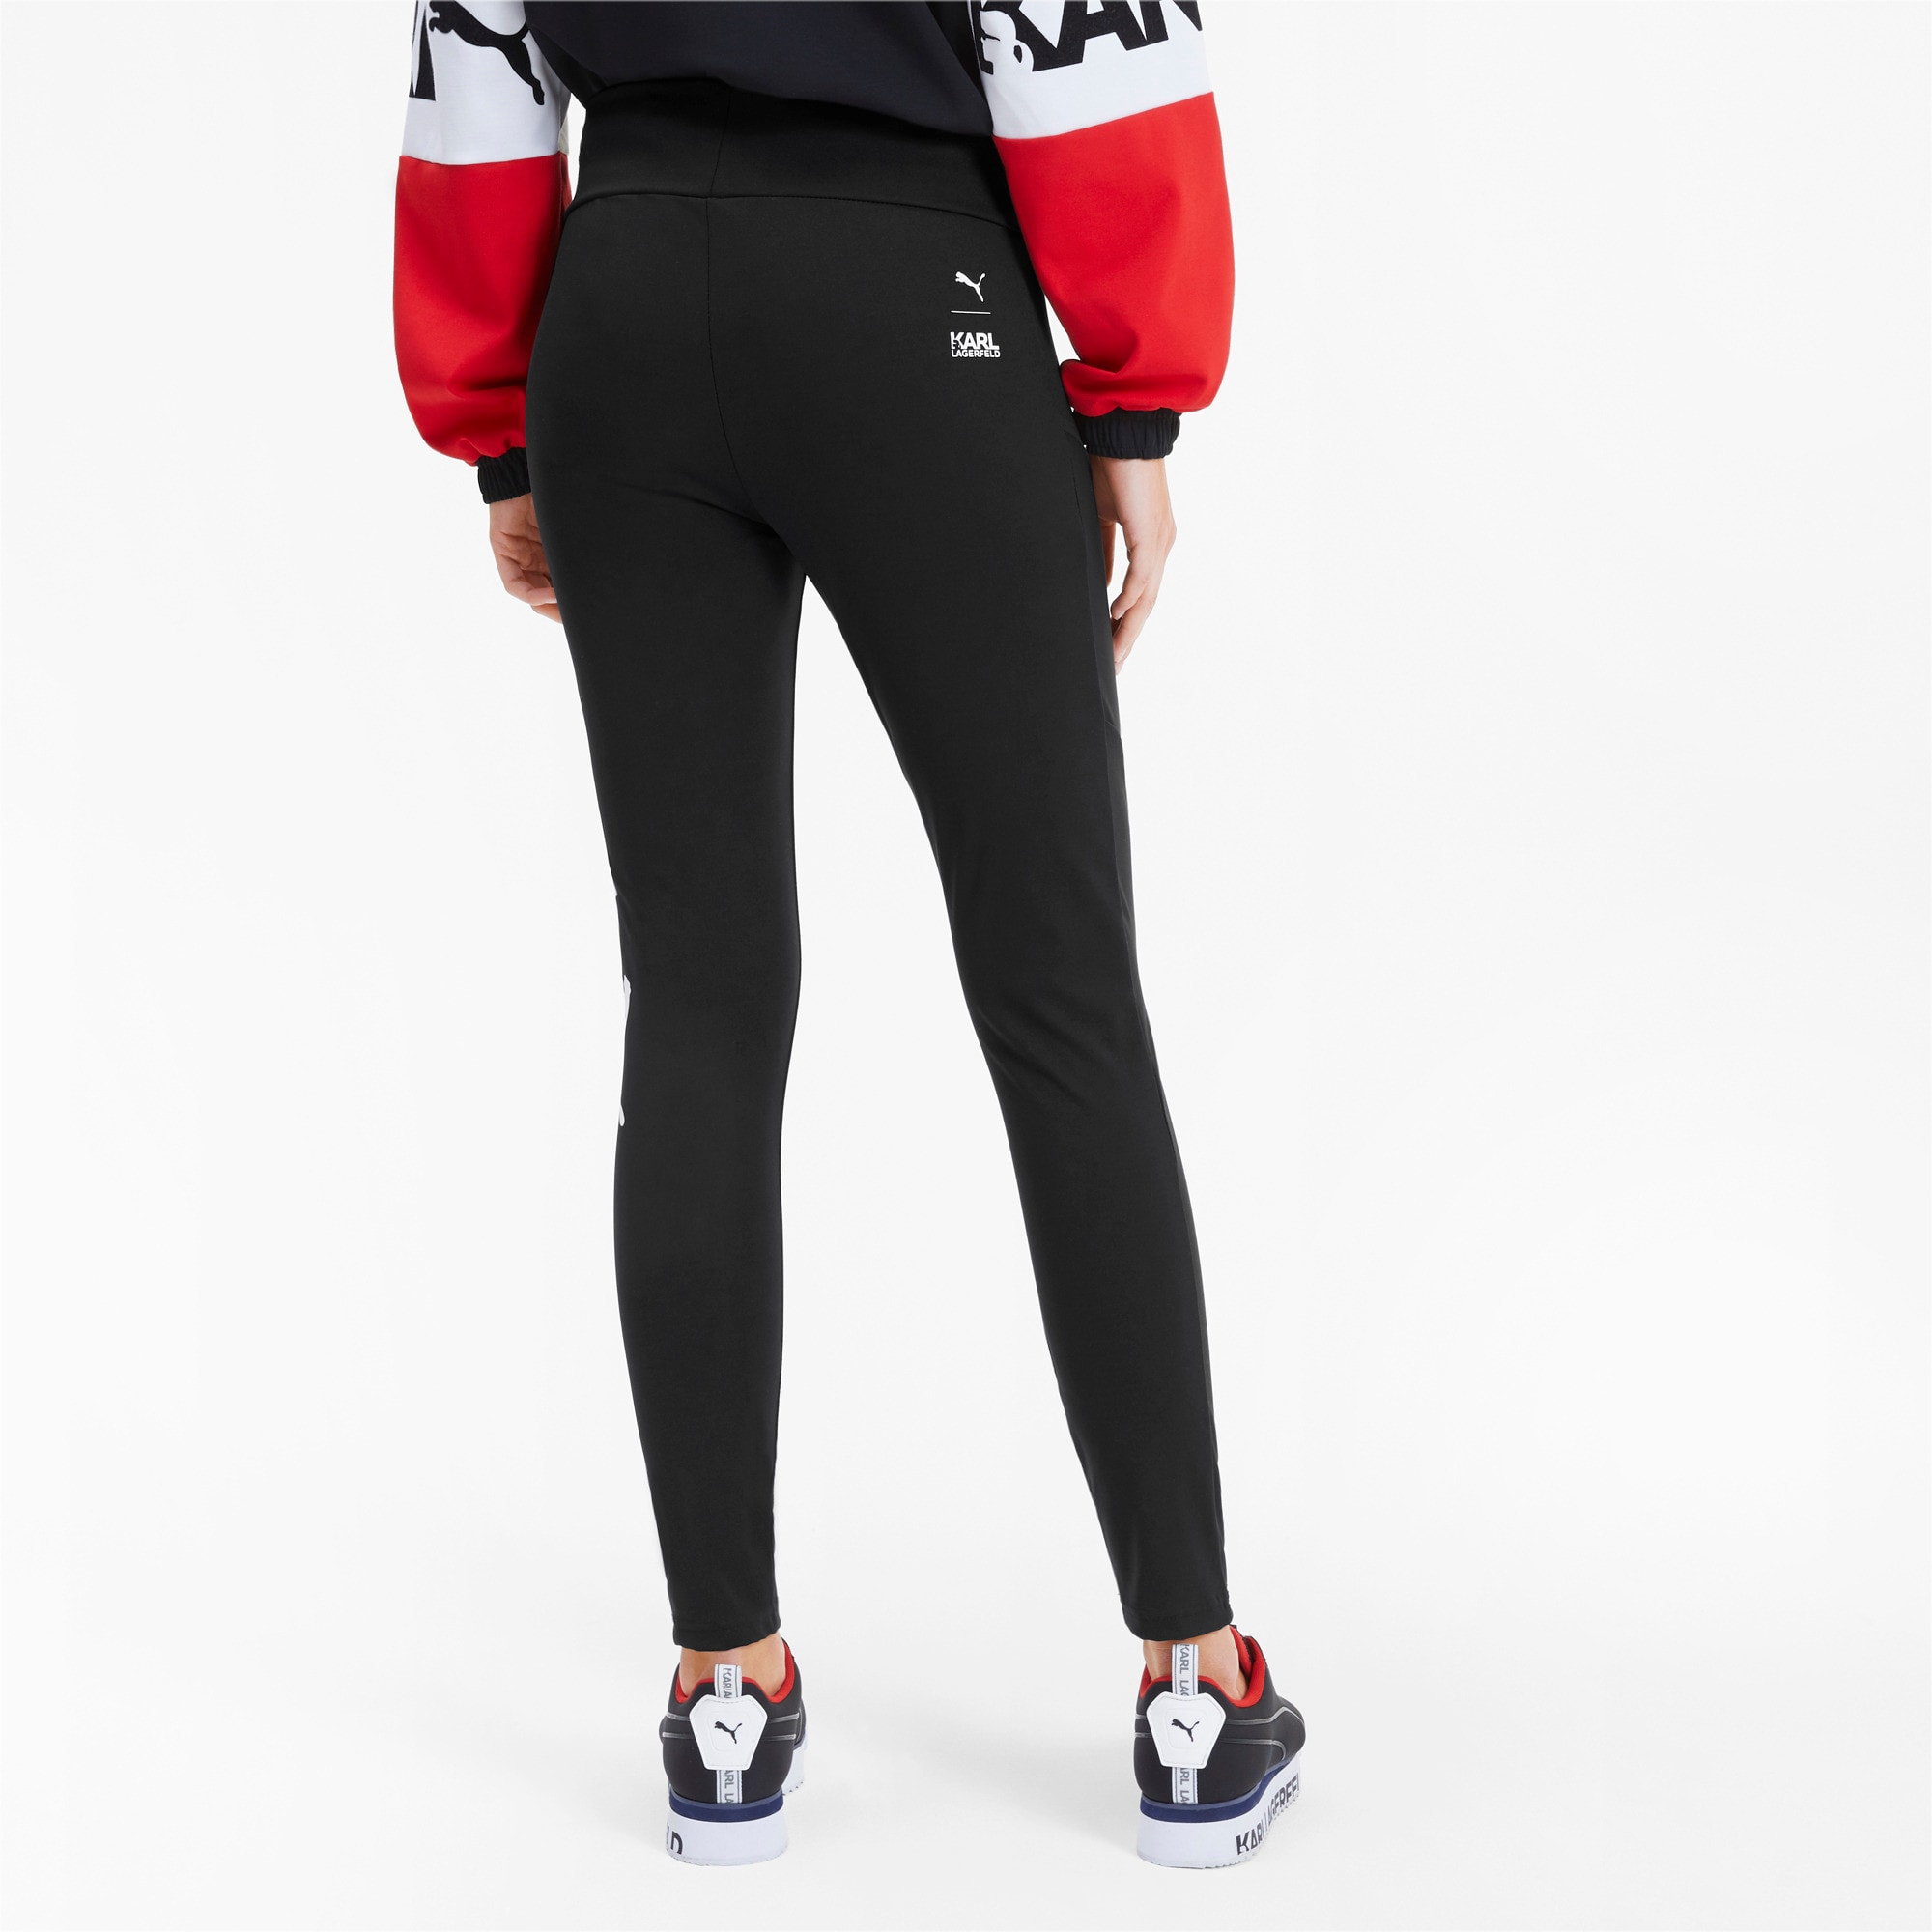 Thumbnail 2 of PUMA x KARL LAGERFELD Women's Leggings, Puma Black, medium